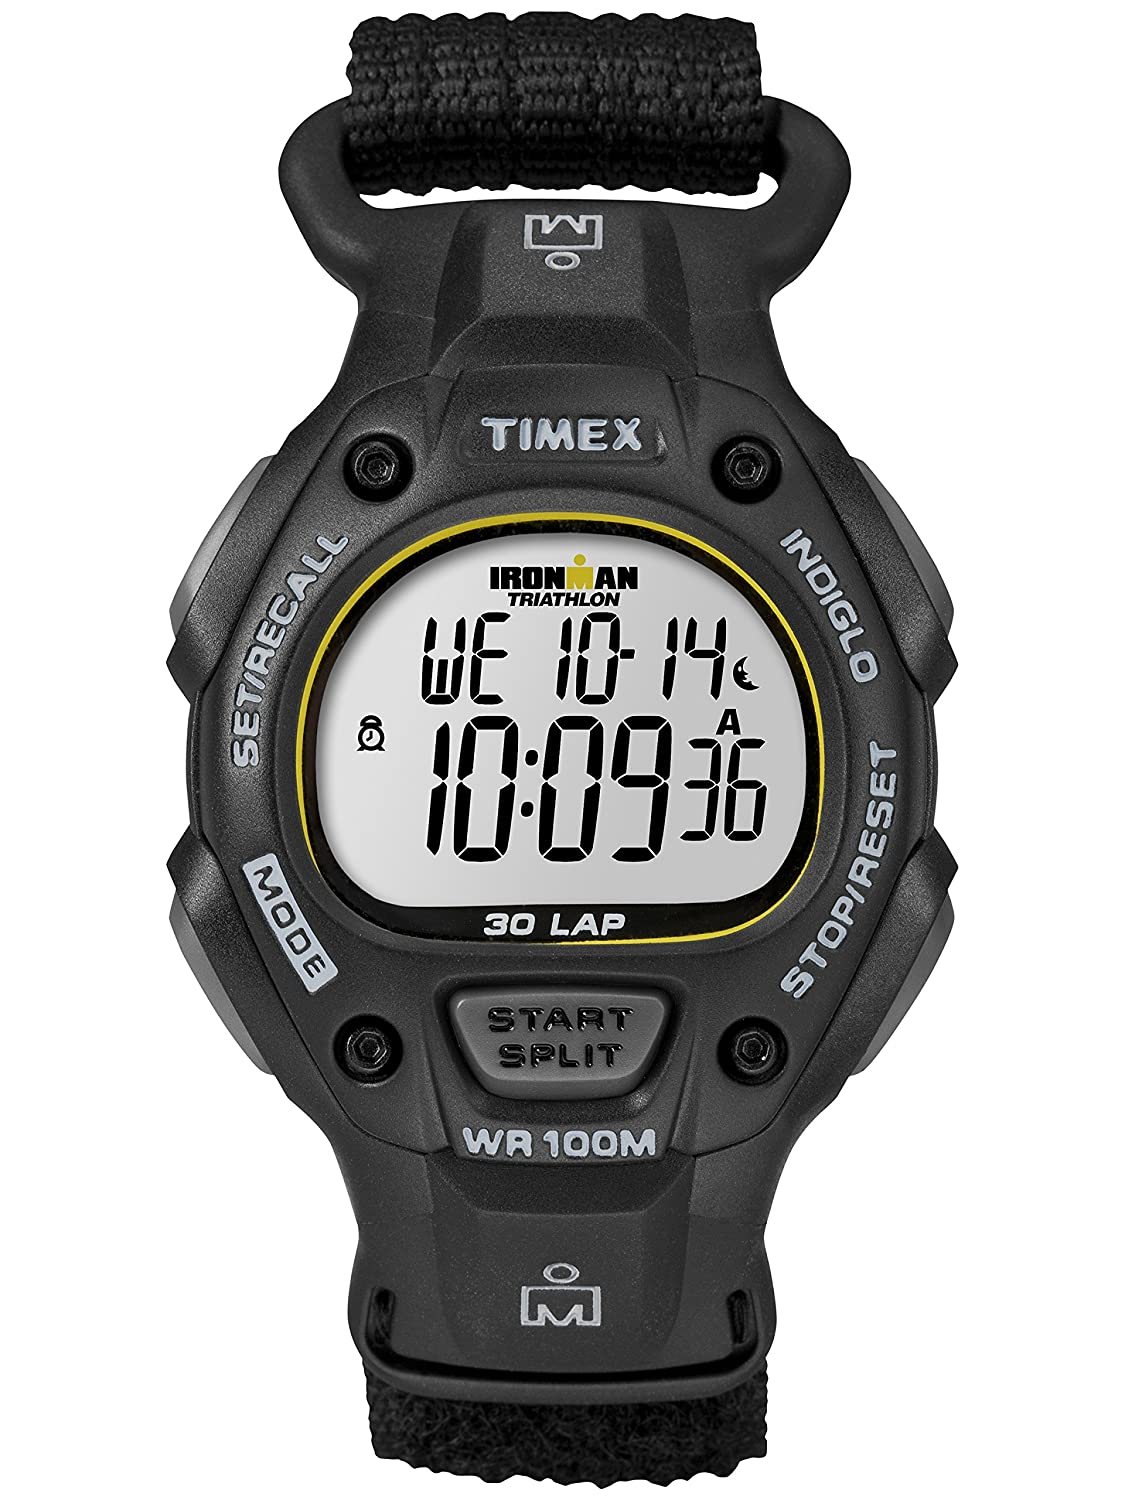 Amazon.com: Timex Mens Ironman Classic 30 Full-Size Watch, Black Fast Wrap Strap Dads Gift Fathers Day: Cell Phones & Accessories